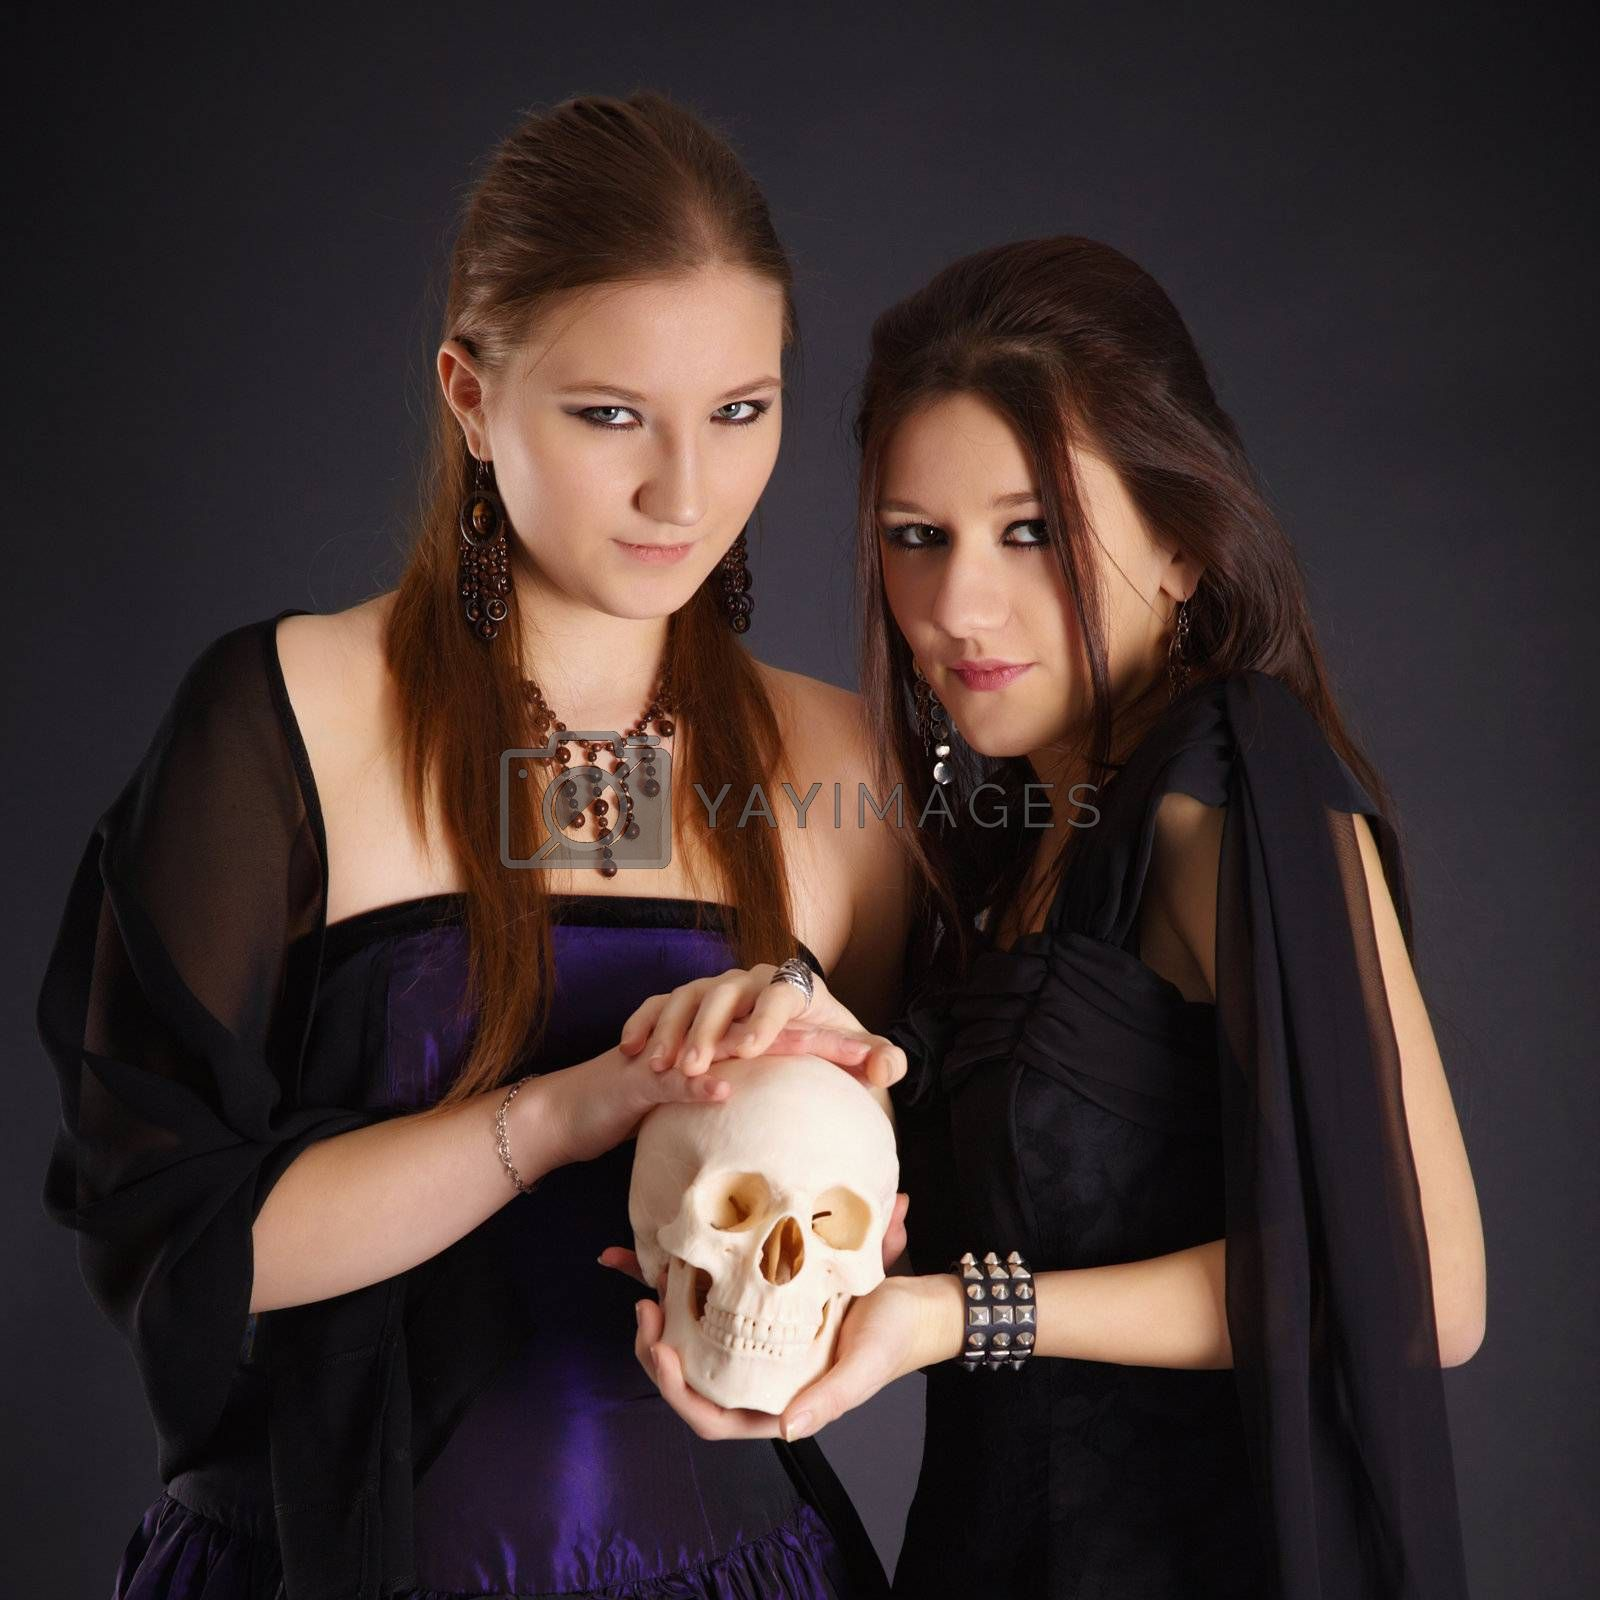 Two young girls in the dark with a human skull